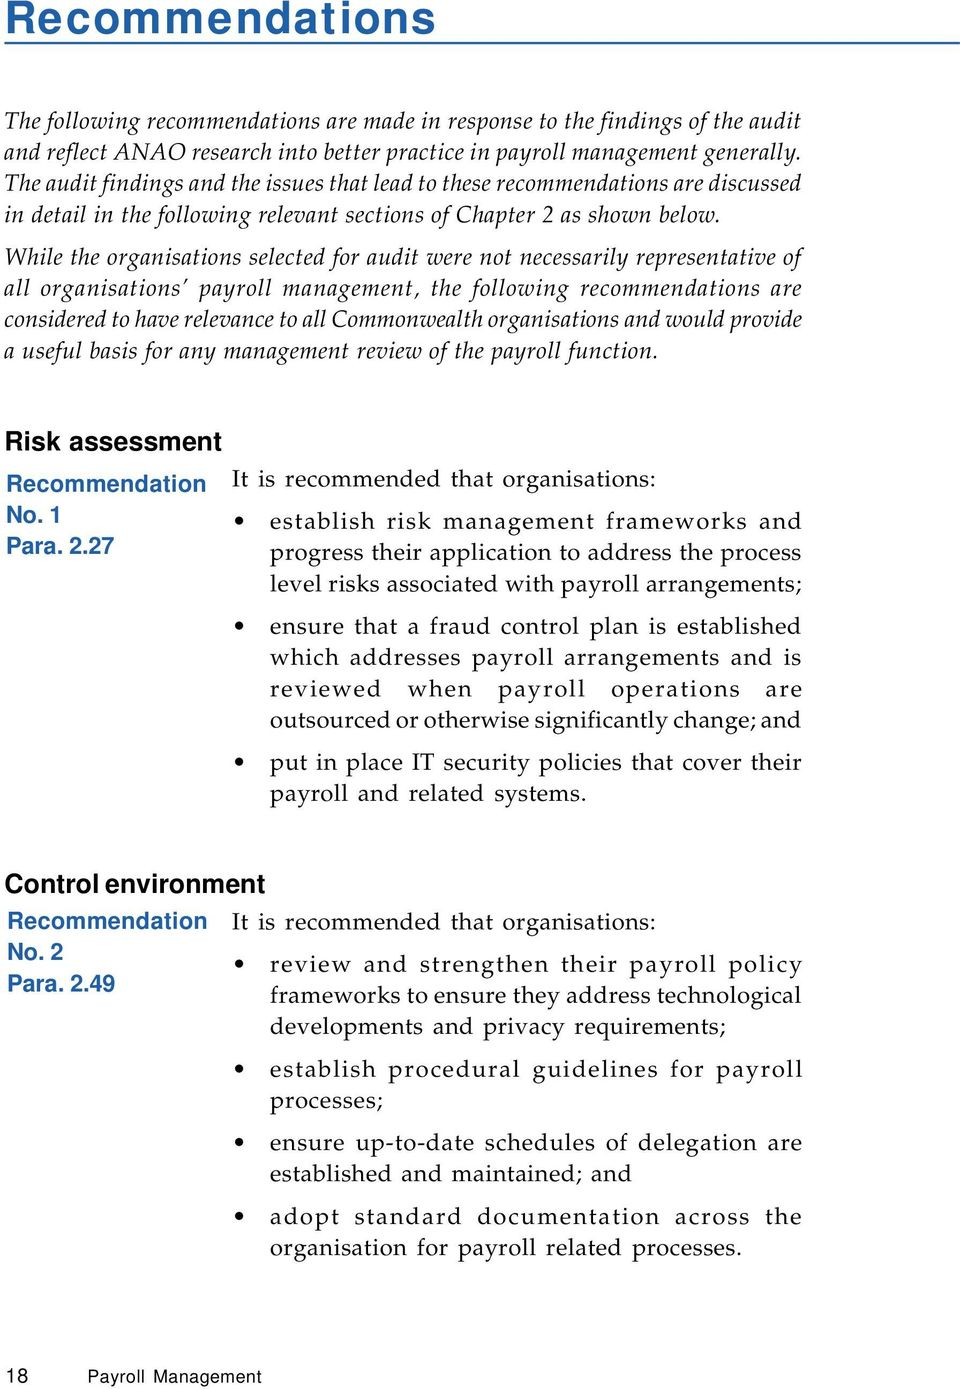 While the organisations selected for audit were not necessarily representative of all organisations payroll management, the following recommendations are considered to have relevance to all